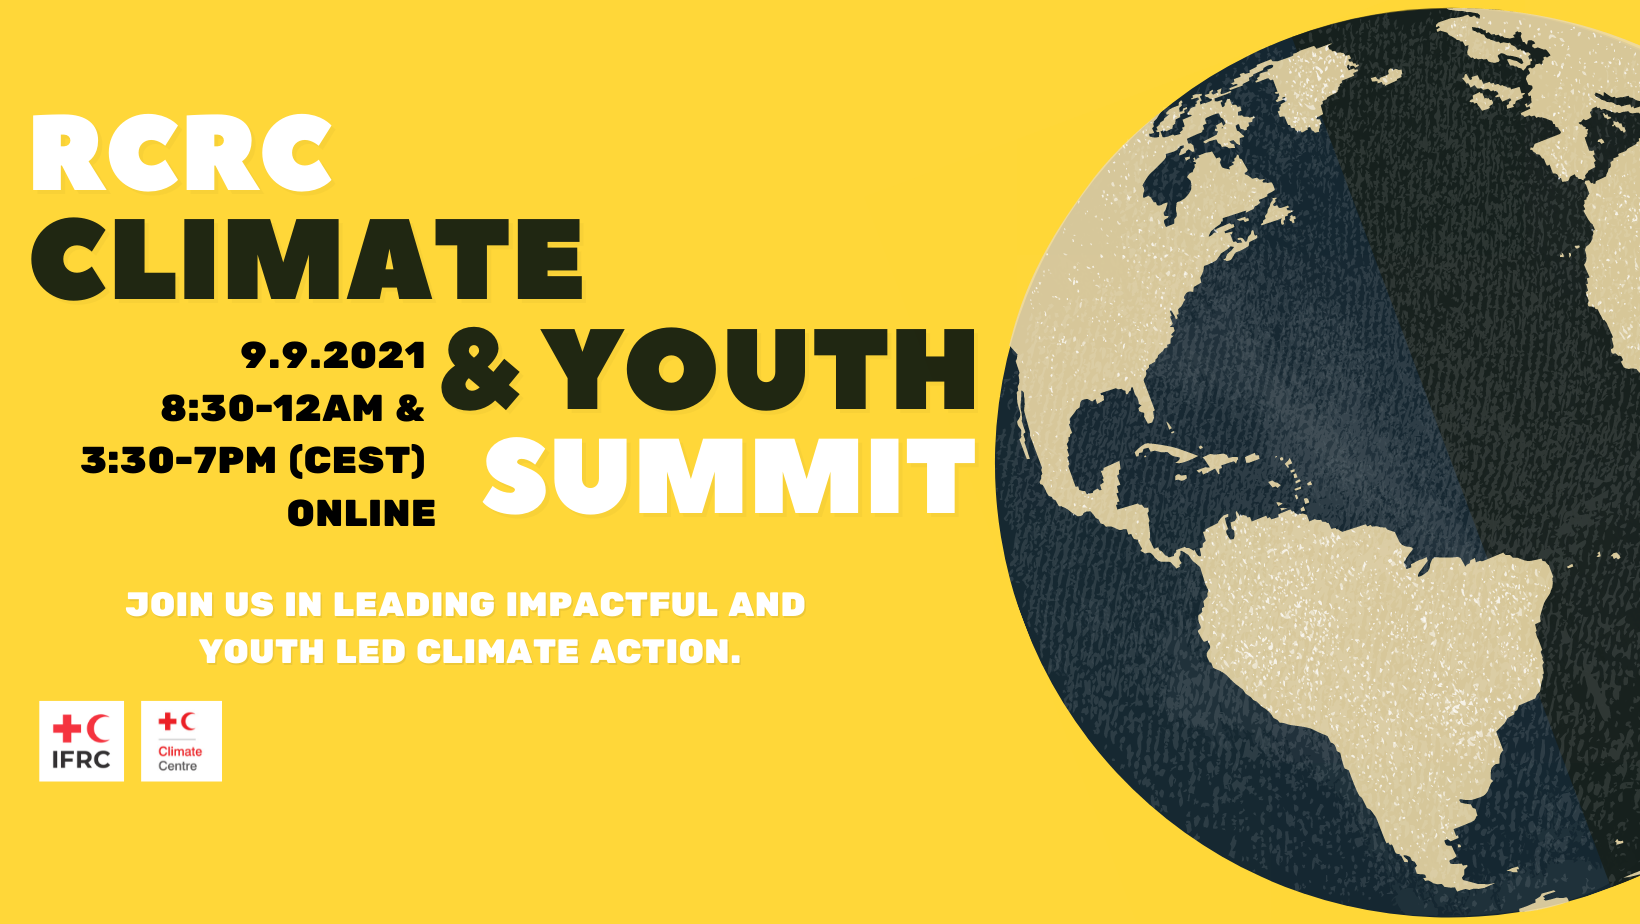 IFRC youth summit